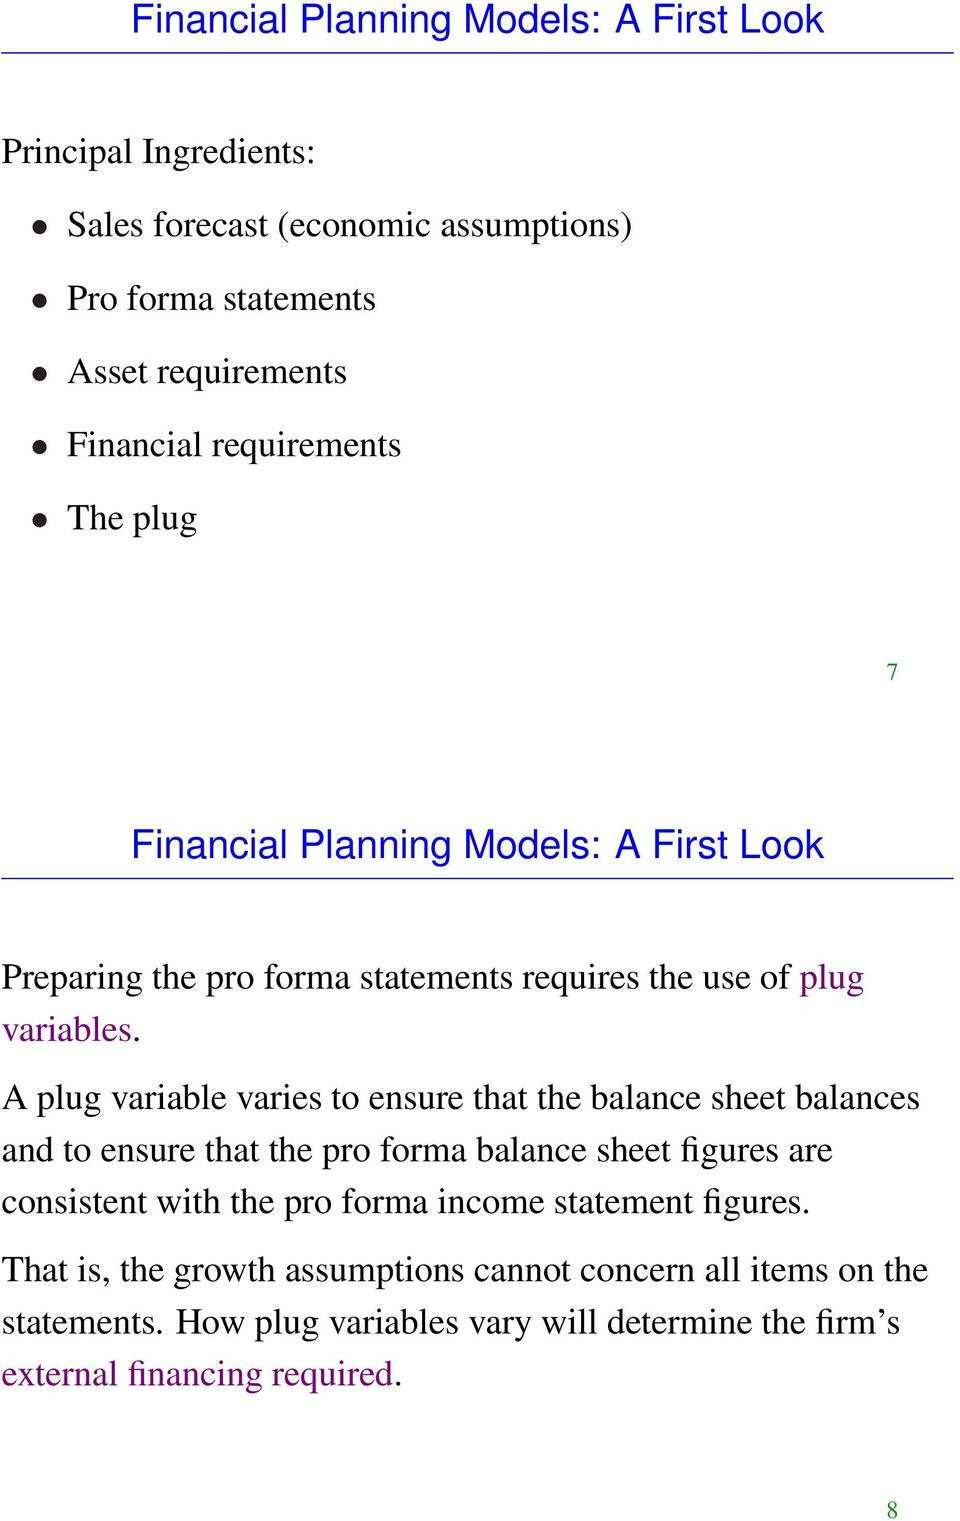 A plug variable varies to ensure that the balance sheet balances and to ensure that the pro forma balance sheet figures are consistent with the pro forma